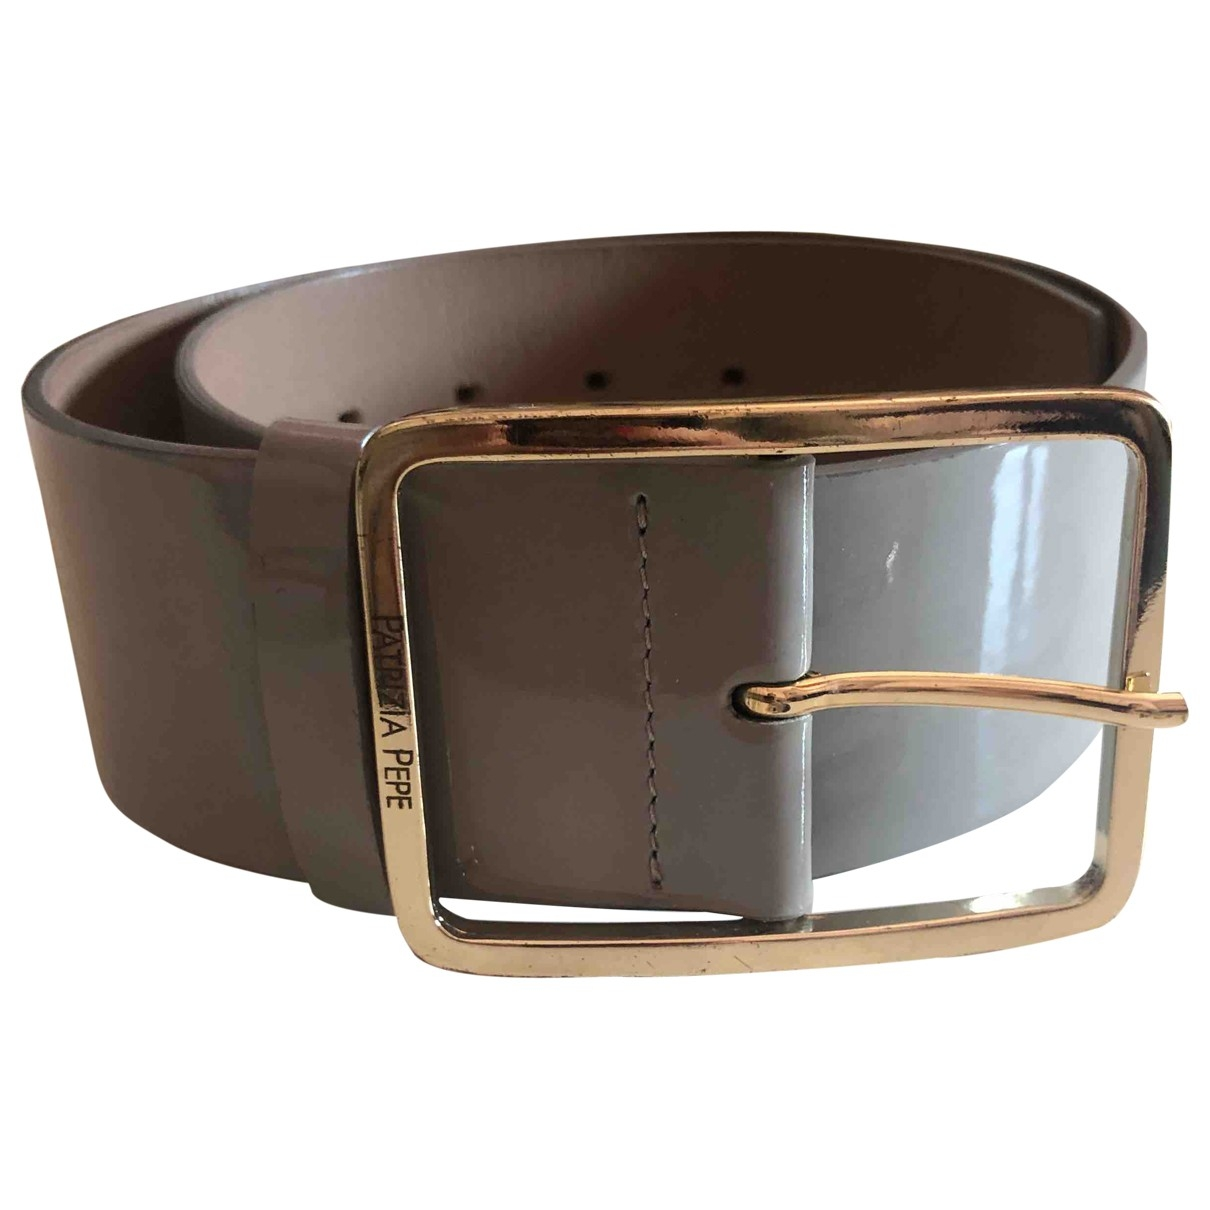 Patrizia Pepe \N Grey Patent leather belt for Women S International